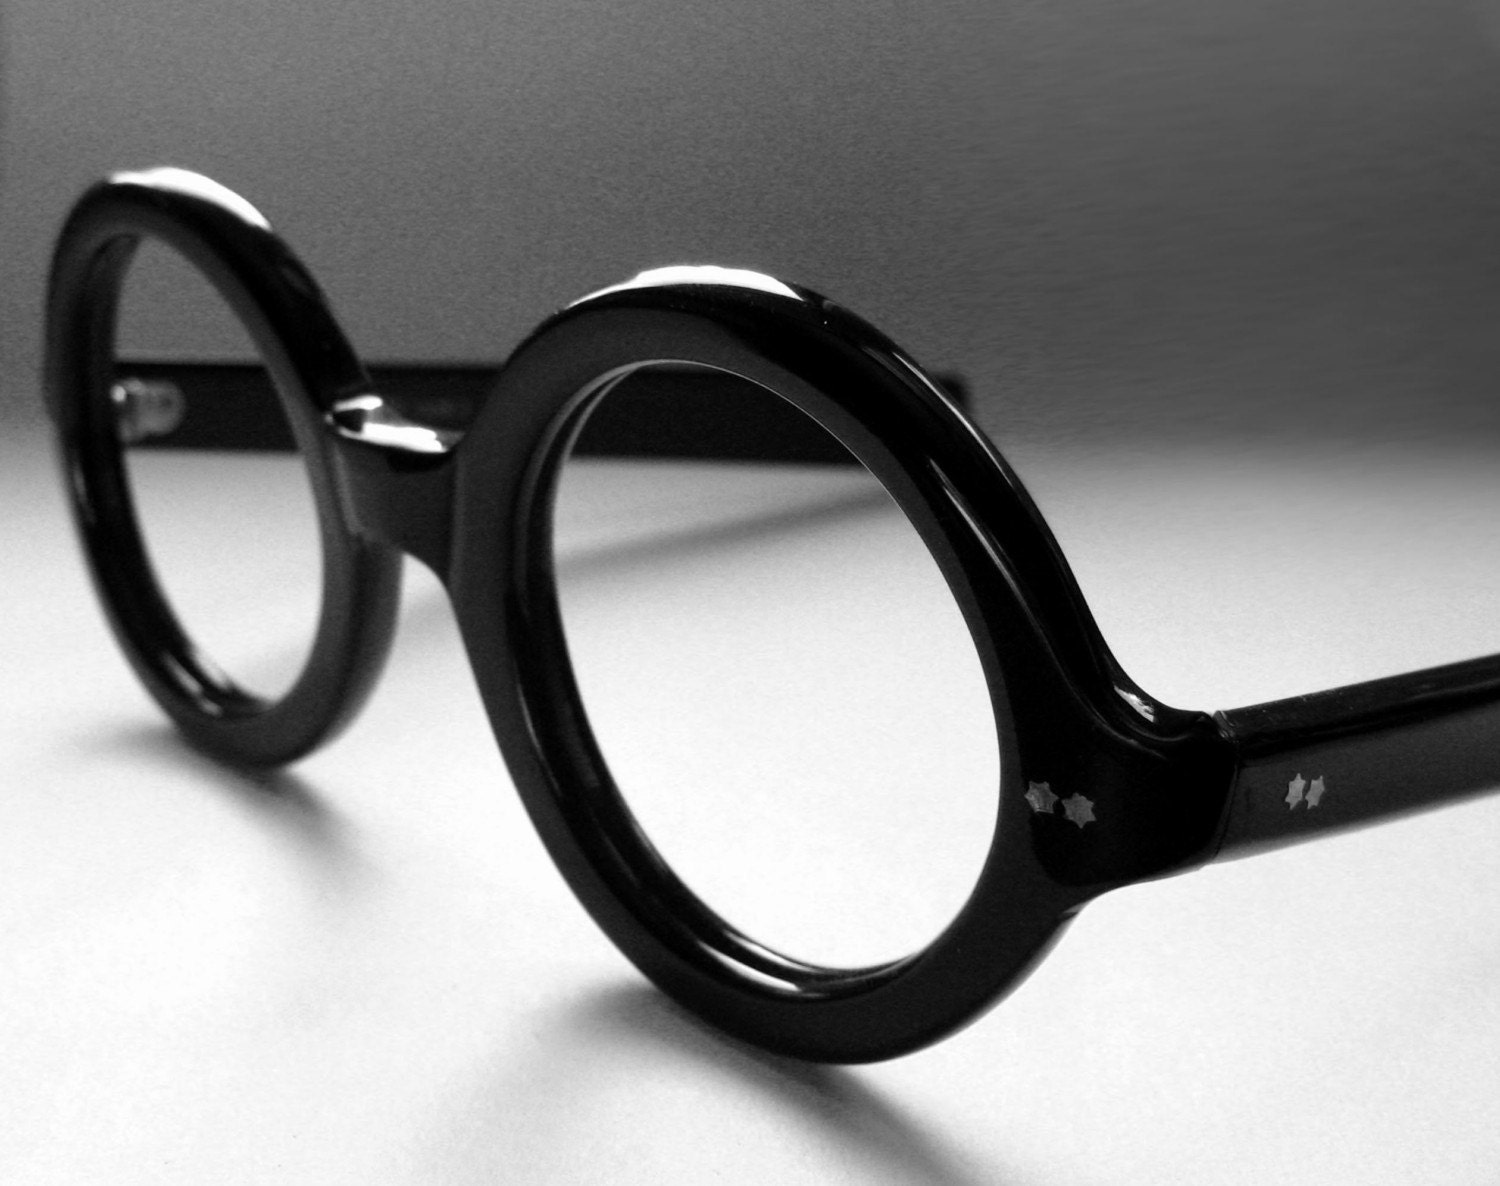 Round Eyeglasses. Round glasses frames are the original eyeglasses design. In the early 20th century, round glasses were the only shape you could find. Round eyeglasses are simple and natural, honest and intelligent, thoughtful, independent, and smart. The orb shape reminds us of enduring qualities like the sun and moon/5(10K).